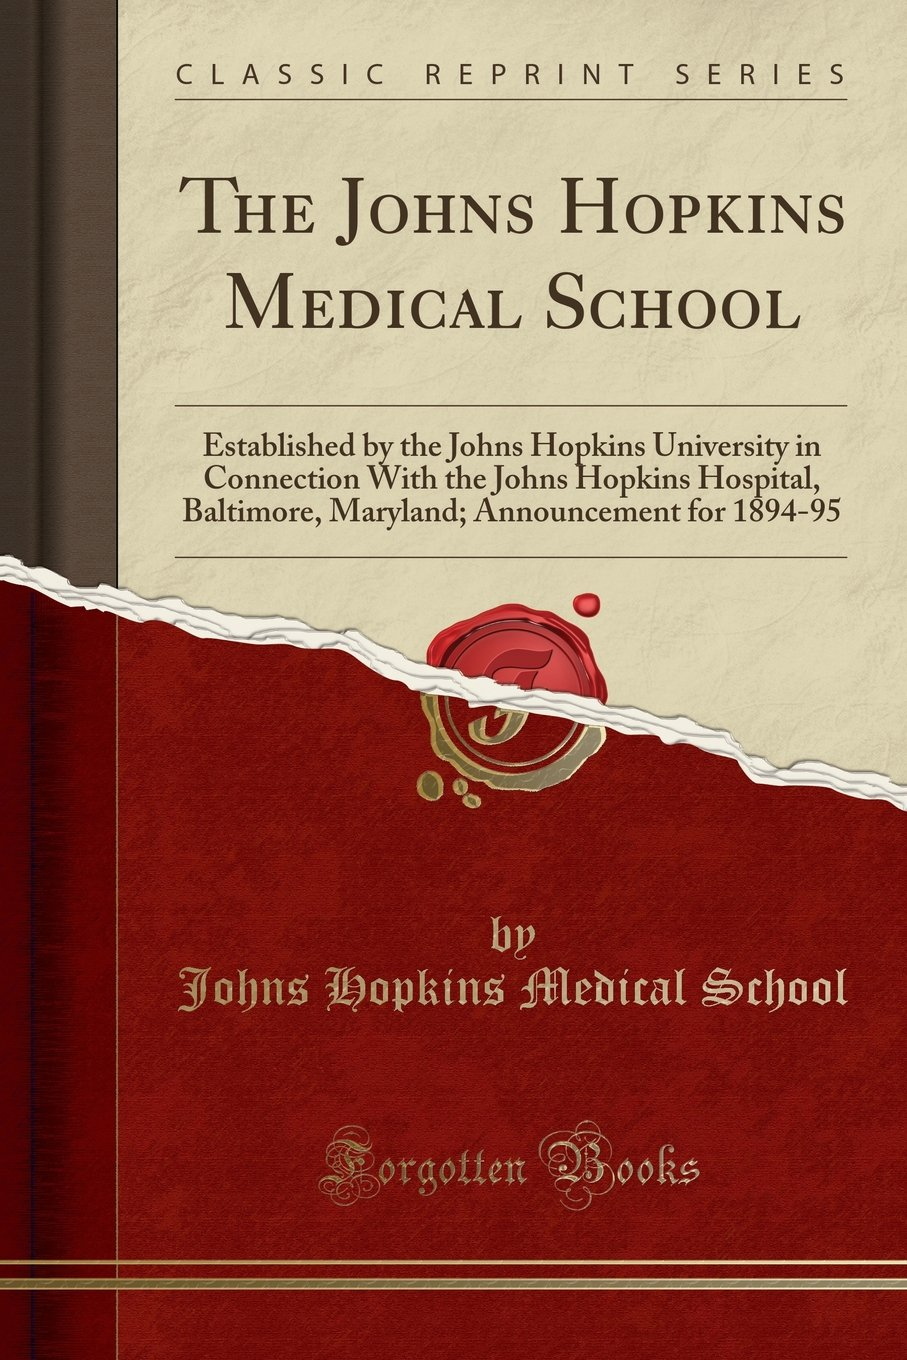 Read Online The Johns Hopkins Medical School: Established by the Johns Hopkins University in Connection With the Johns Hopkins Hospital, Baltimore, Maryland; Announcement for 1894-95 (Classic Reprint) PDF